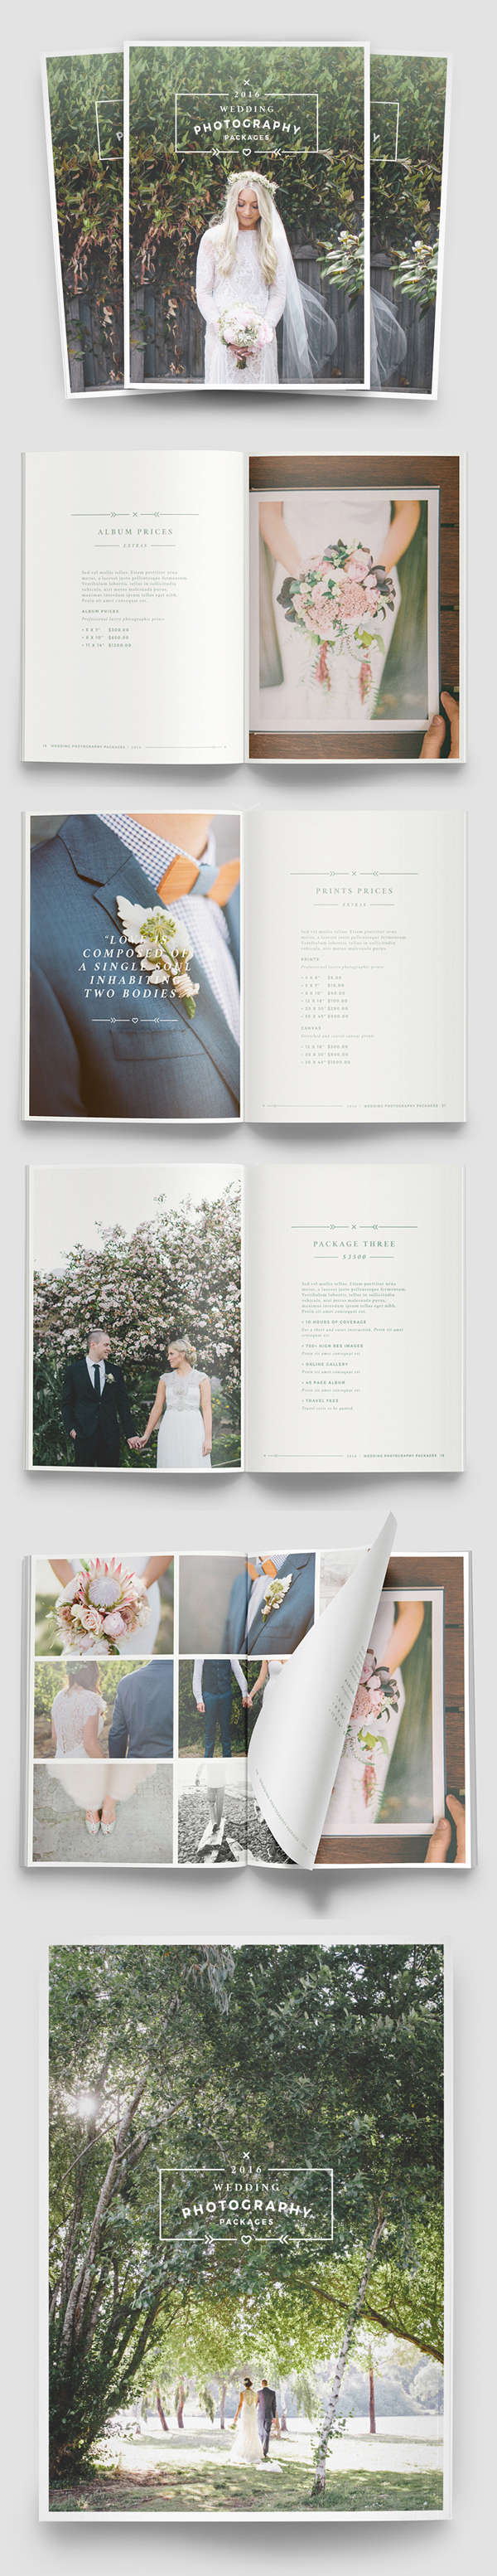 Multipurpose Photography Brochure Template